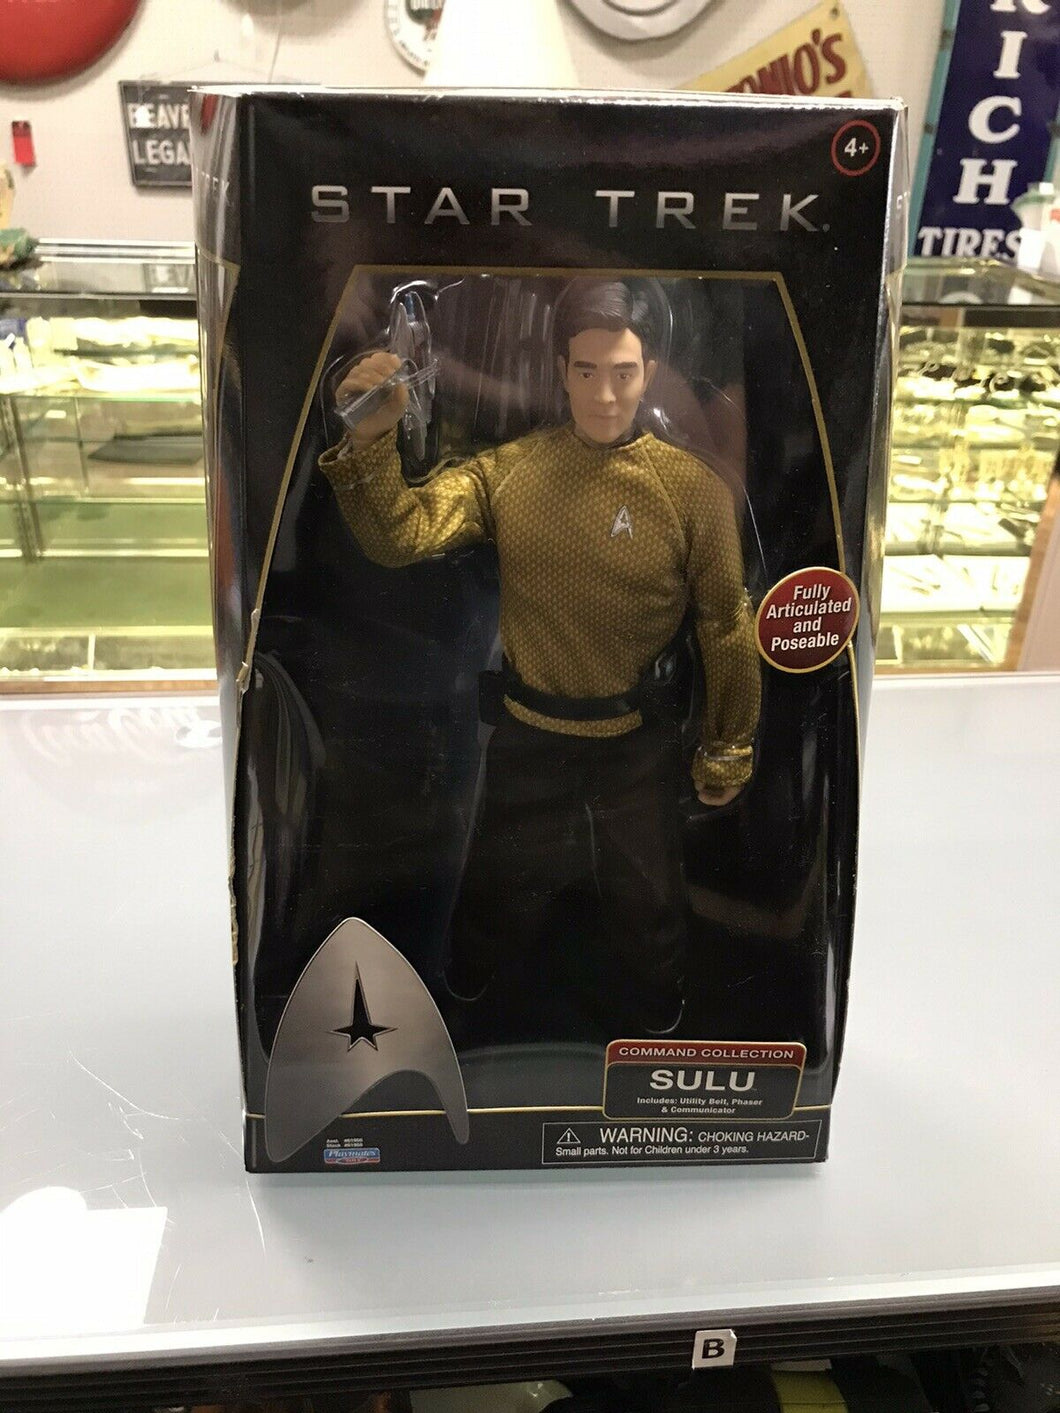 NIB 2009 Star Trek Movie Command Collection Sulu 12